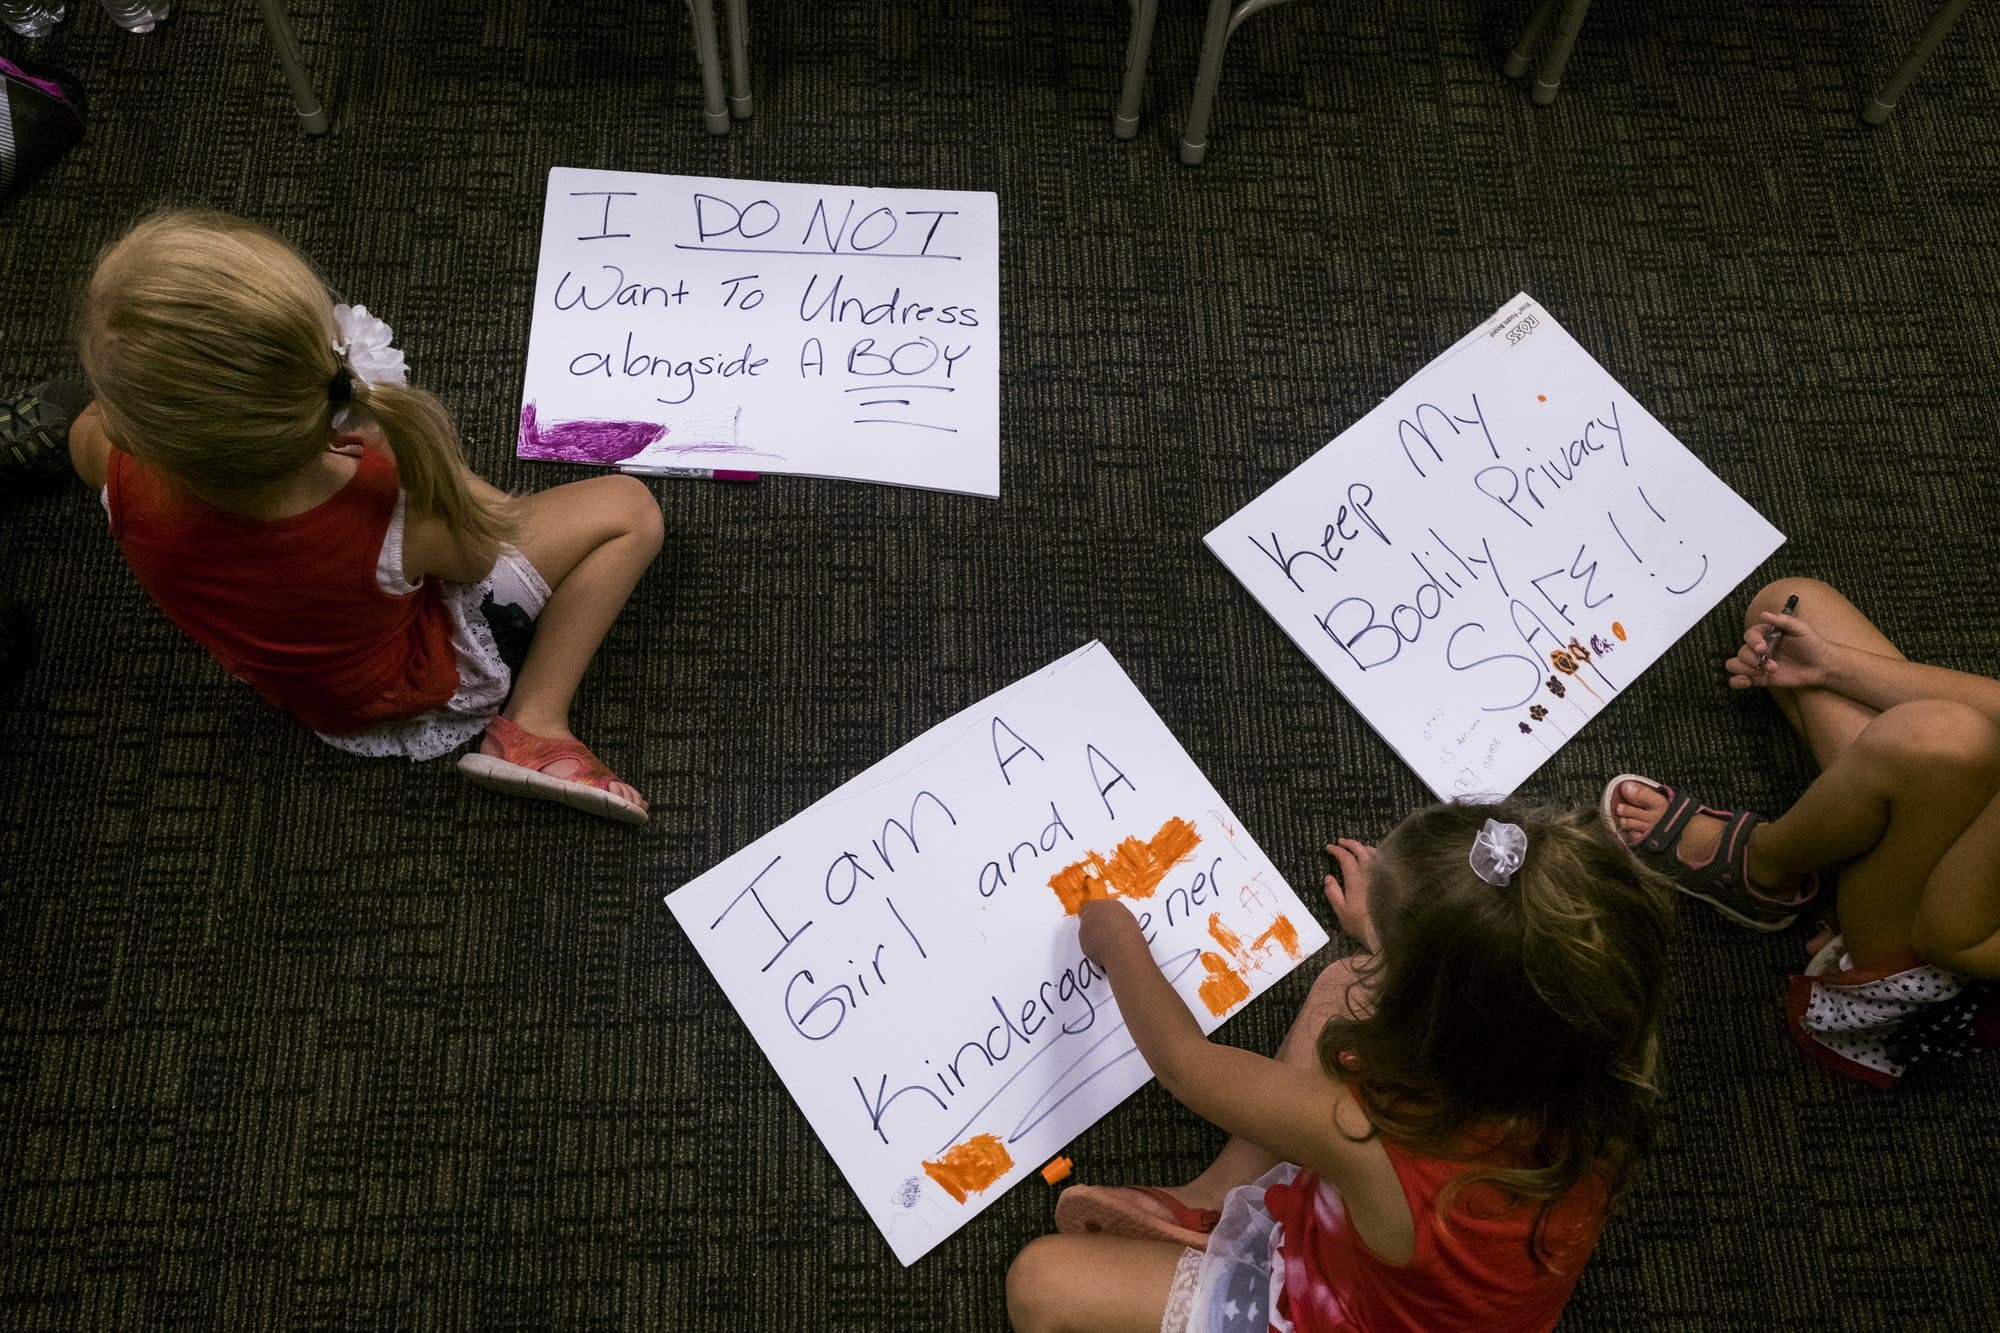 Children color on signs showing opposition to the transgender toolkit.